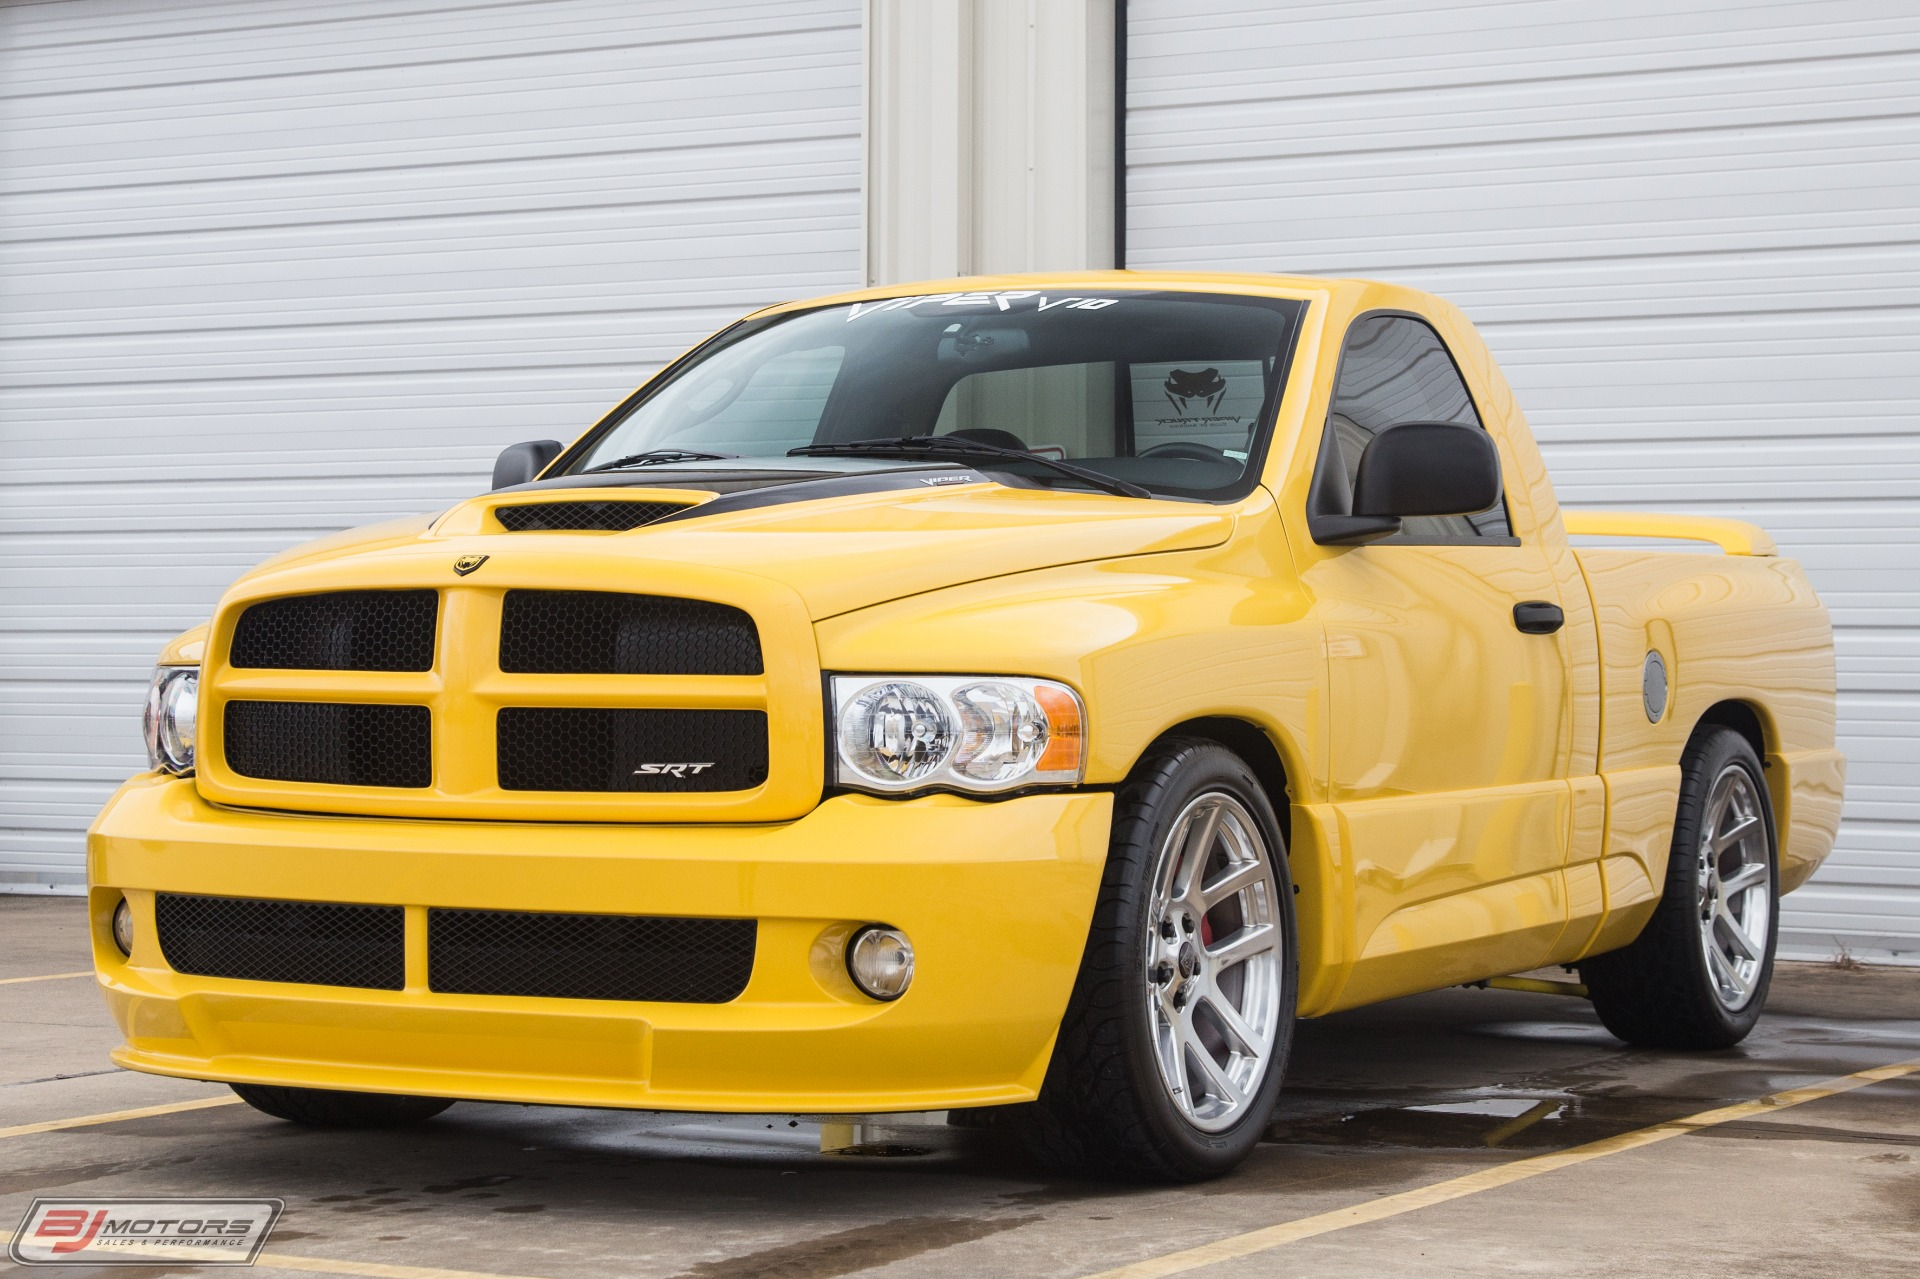 Used-2005-DODGE-RAM-1500-CUSTOM-RAM-1500-BUILT-BY-TODD-ABRAMS